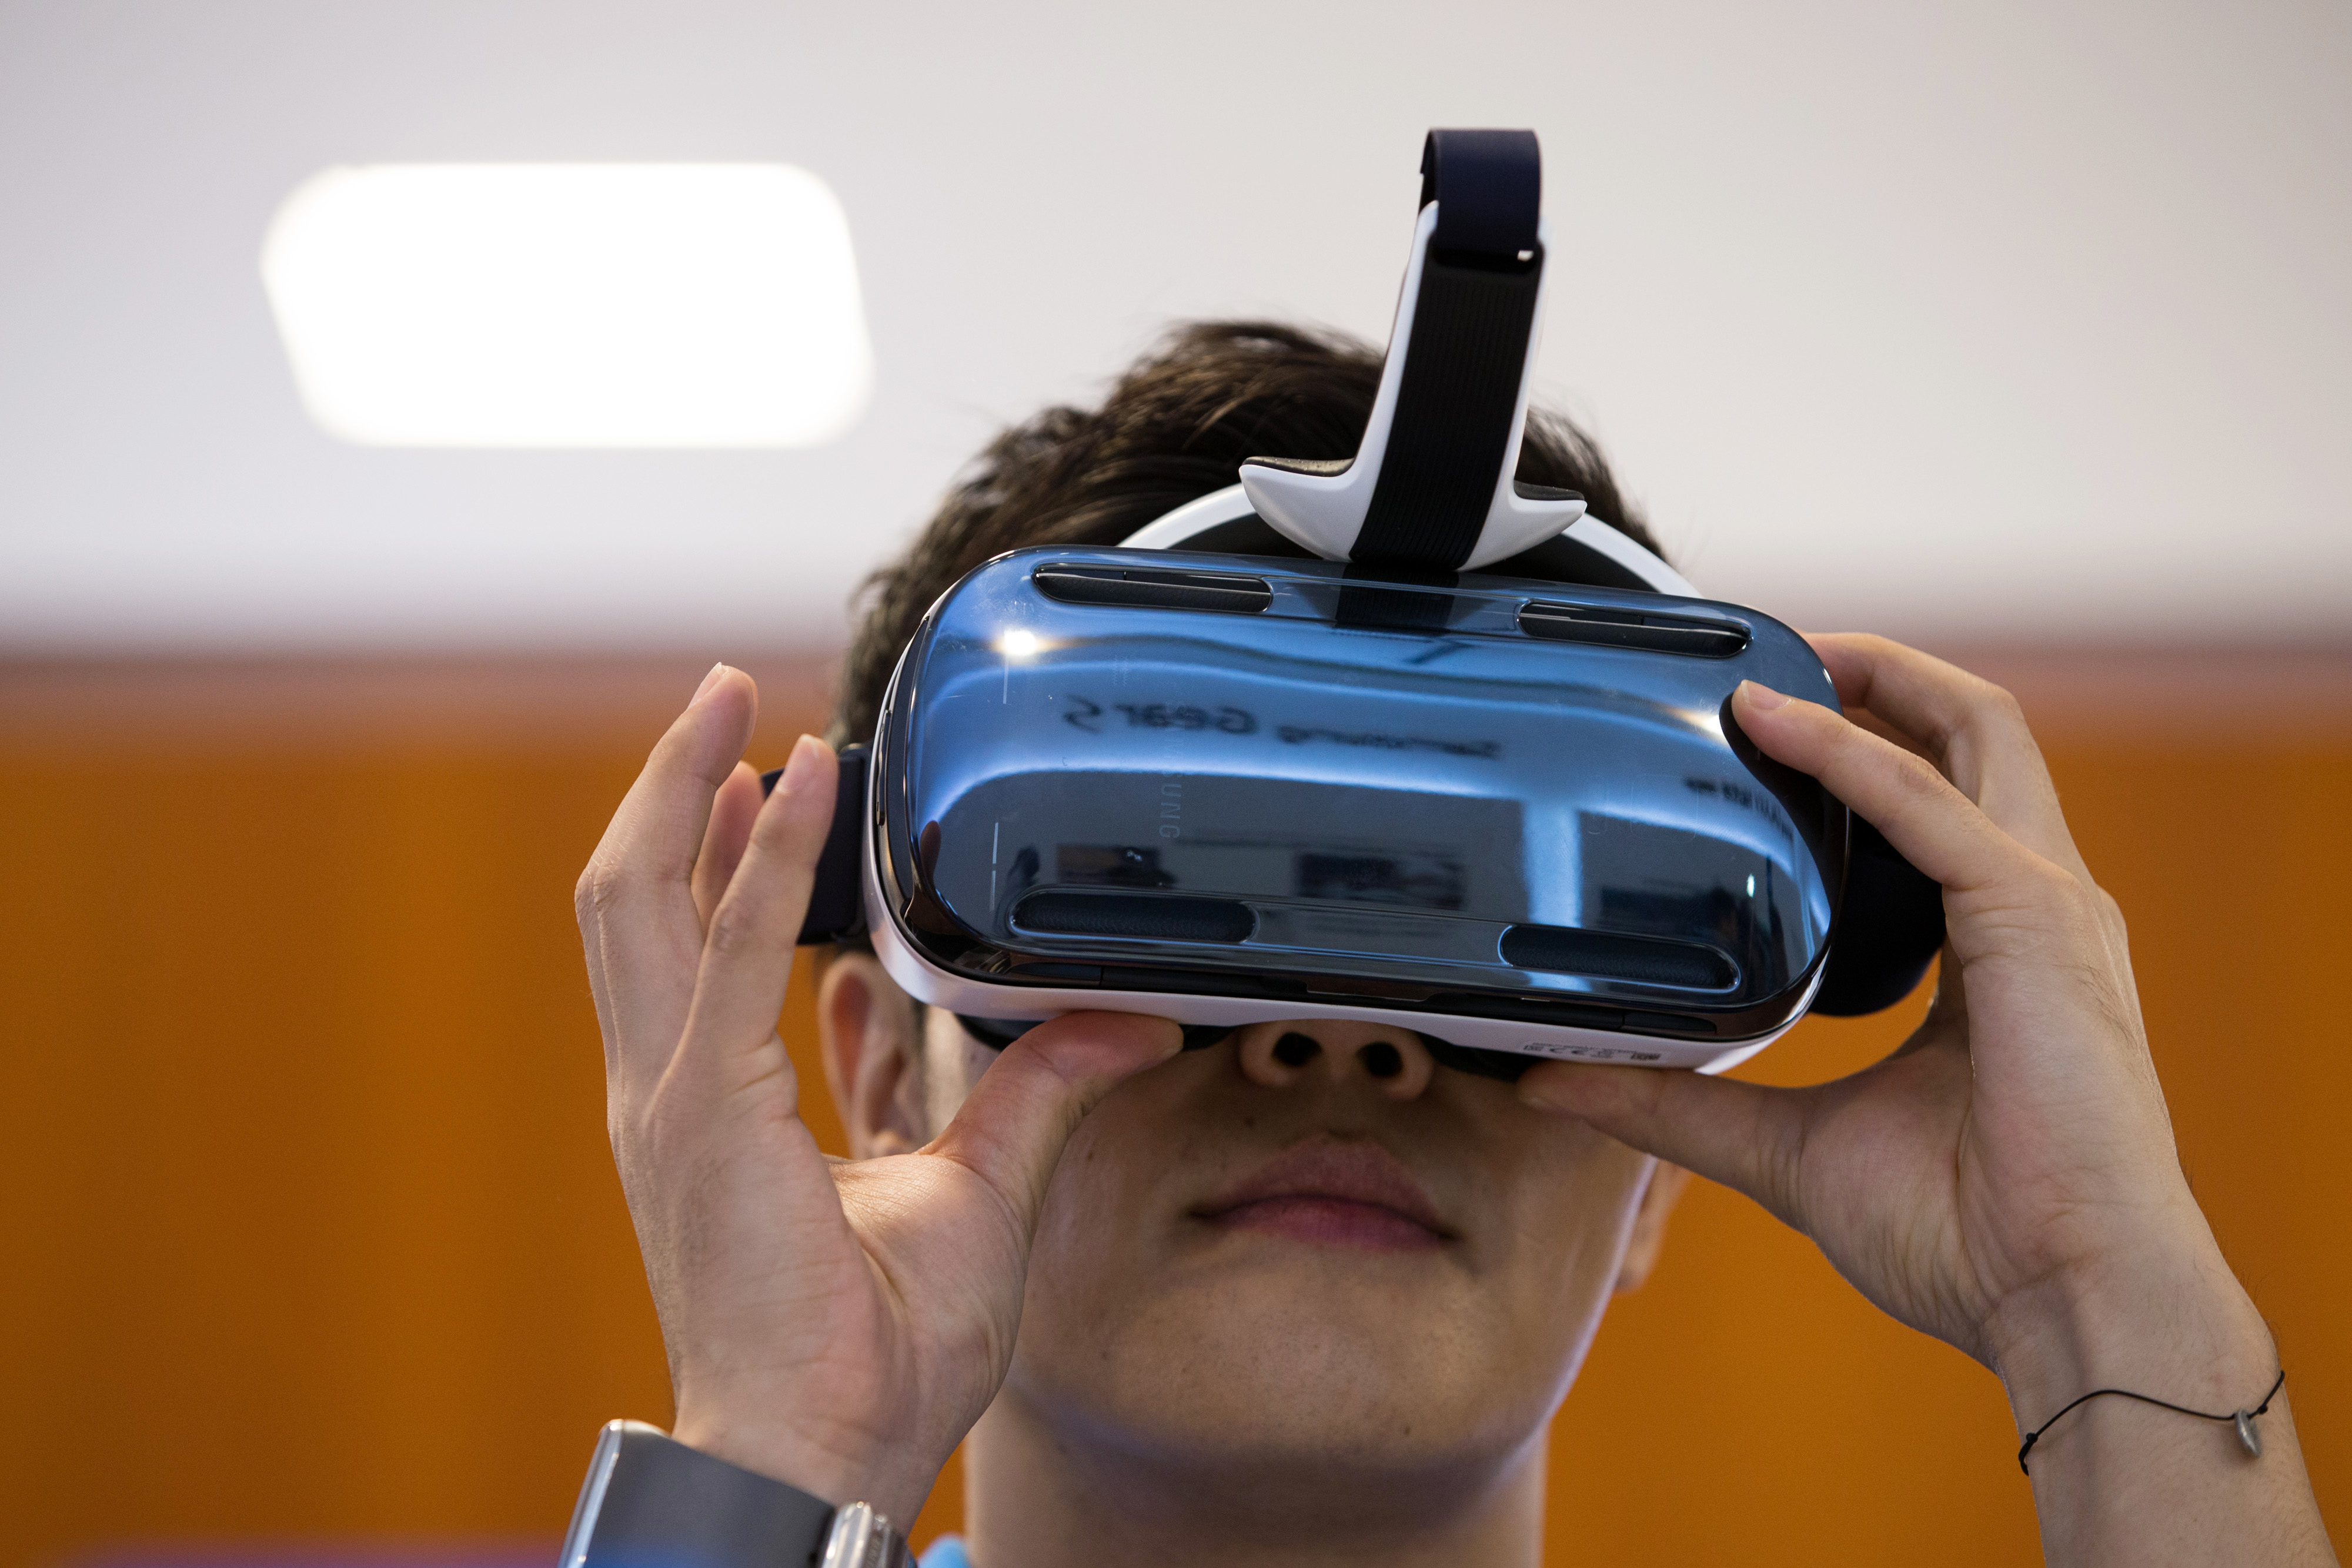 A visitor tries out a Samsung Electronics Co. Galaxy Gear Virtual-Reality (VR) headset, jointly developed by Samsung and Oculus VR Inc., at Samsung's flagship store in Seoul, South Korea, Sept. 24, 2014.